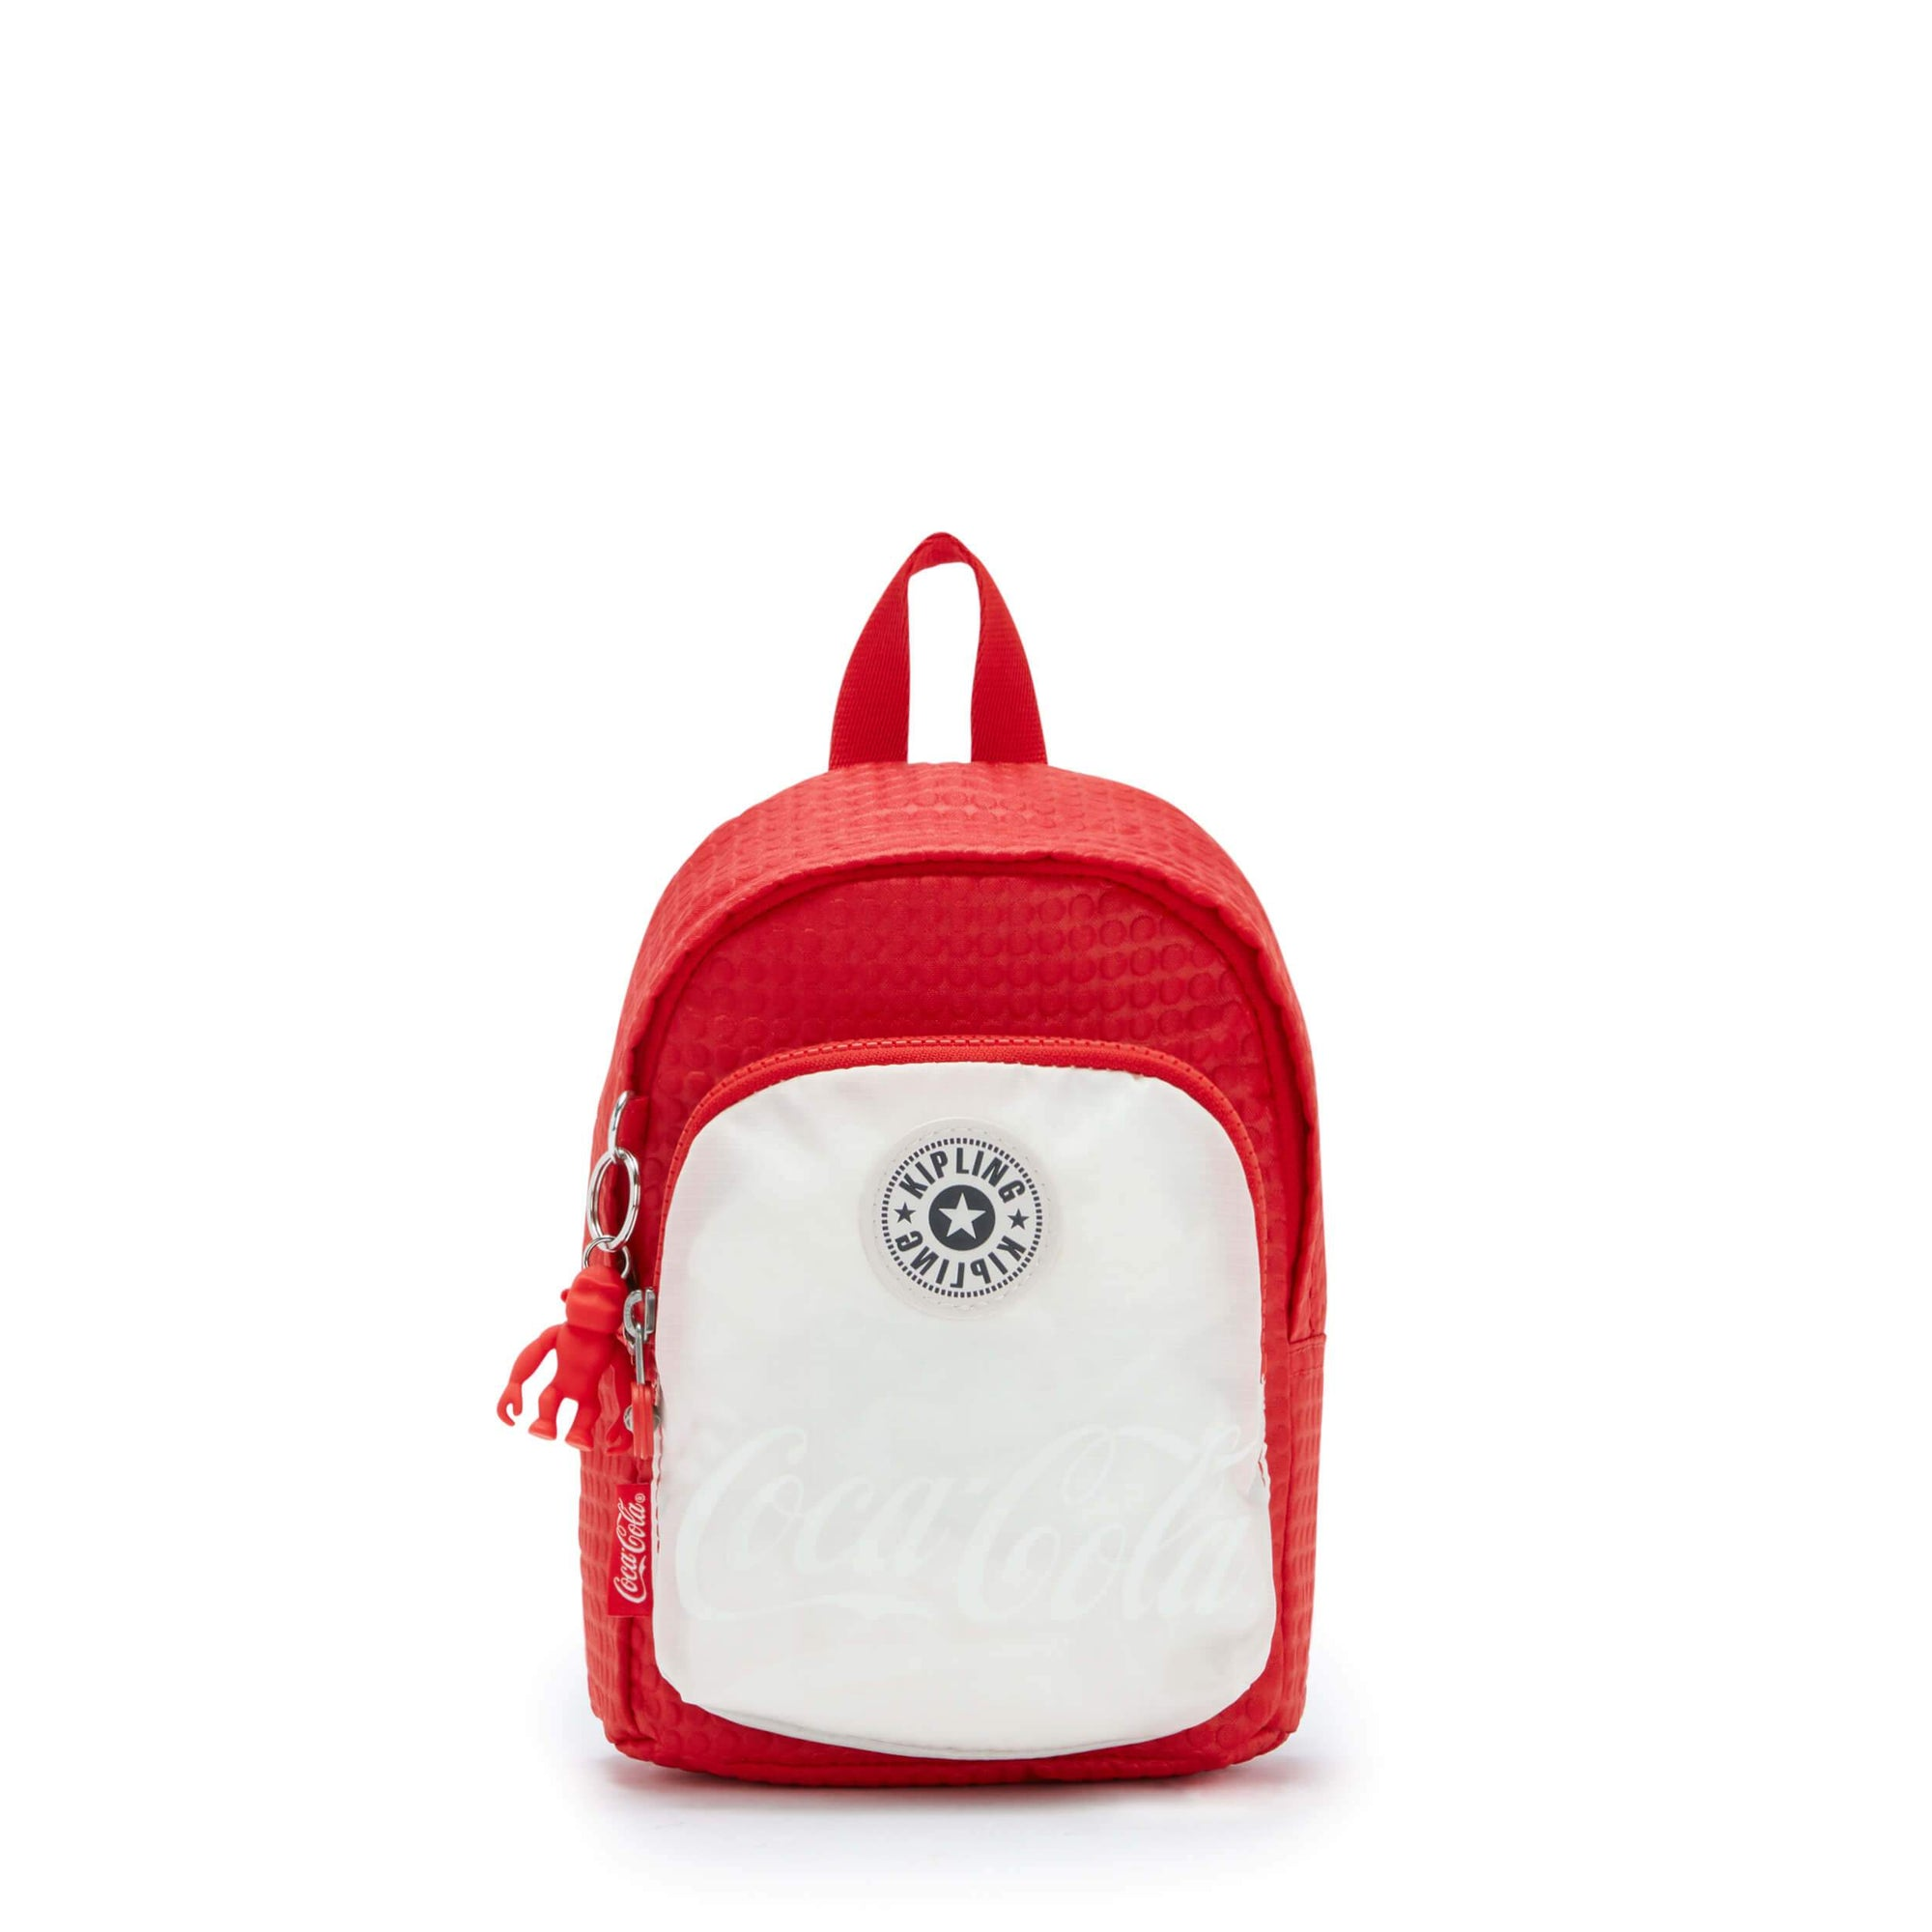 Backpack Kipling Delia Compact - Coca Cola CC Wild Red KI64090EV